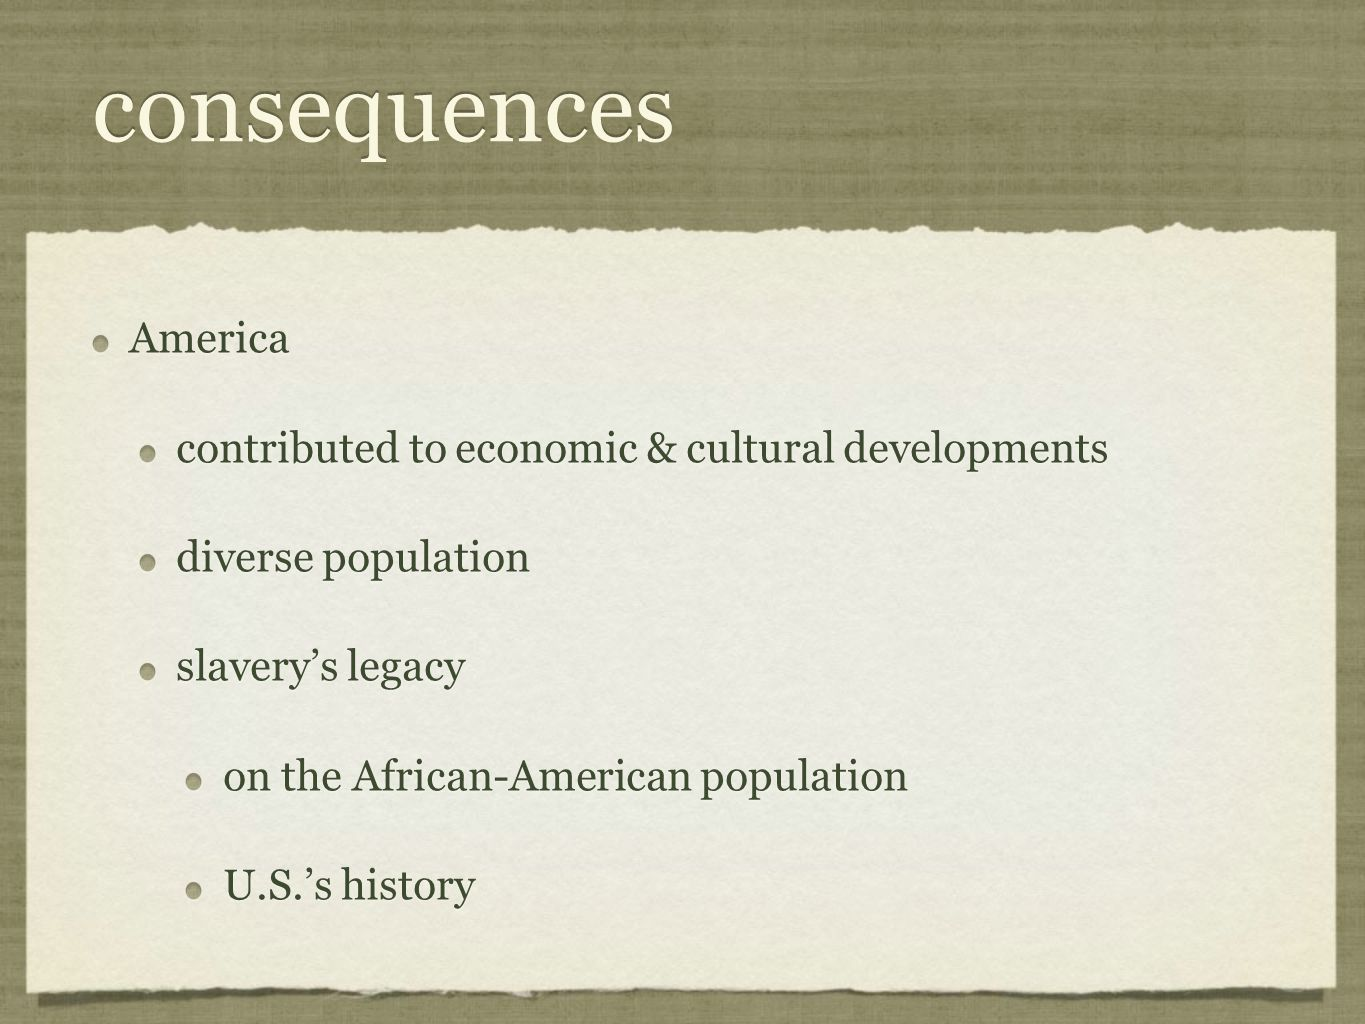 consequences America contributed to economic & cultural developments